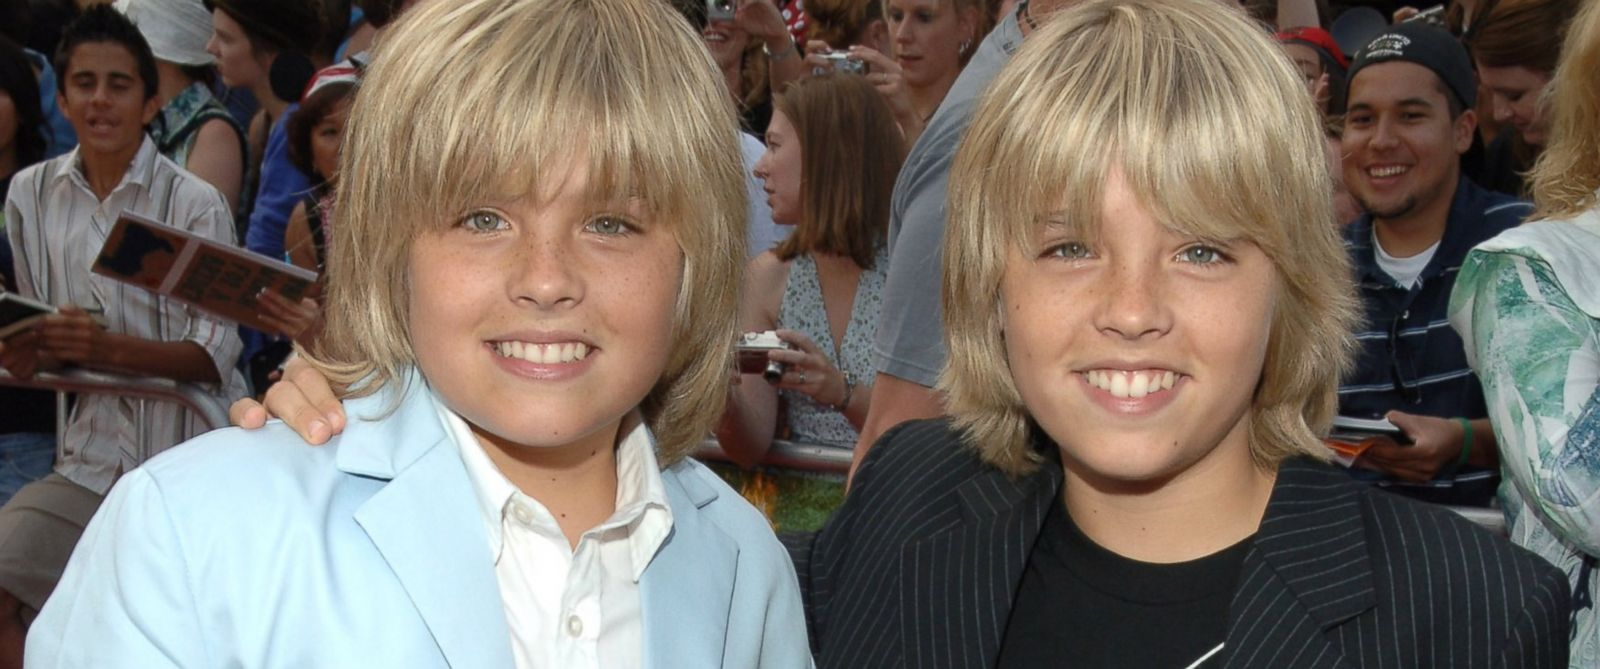 Dylan and Cole Sprouse From 'Suite Life of Zack and Cody' Graduate